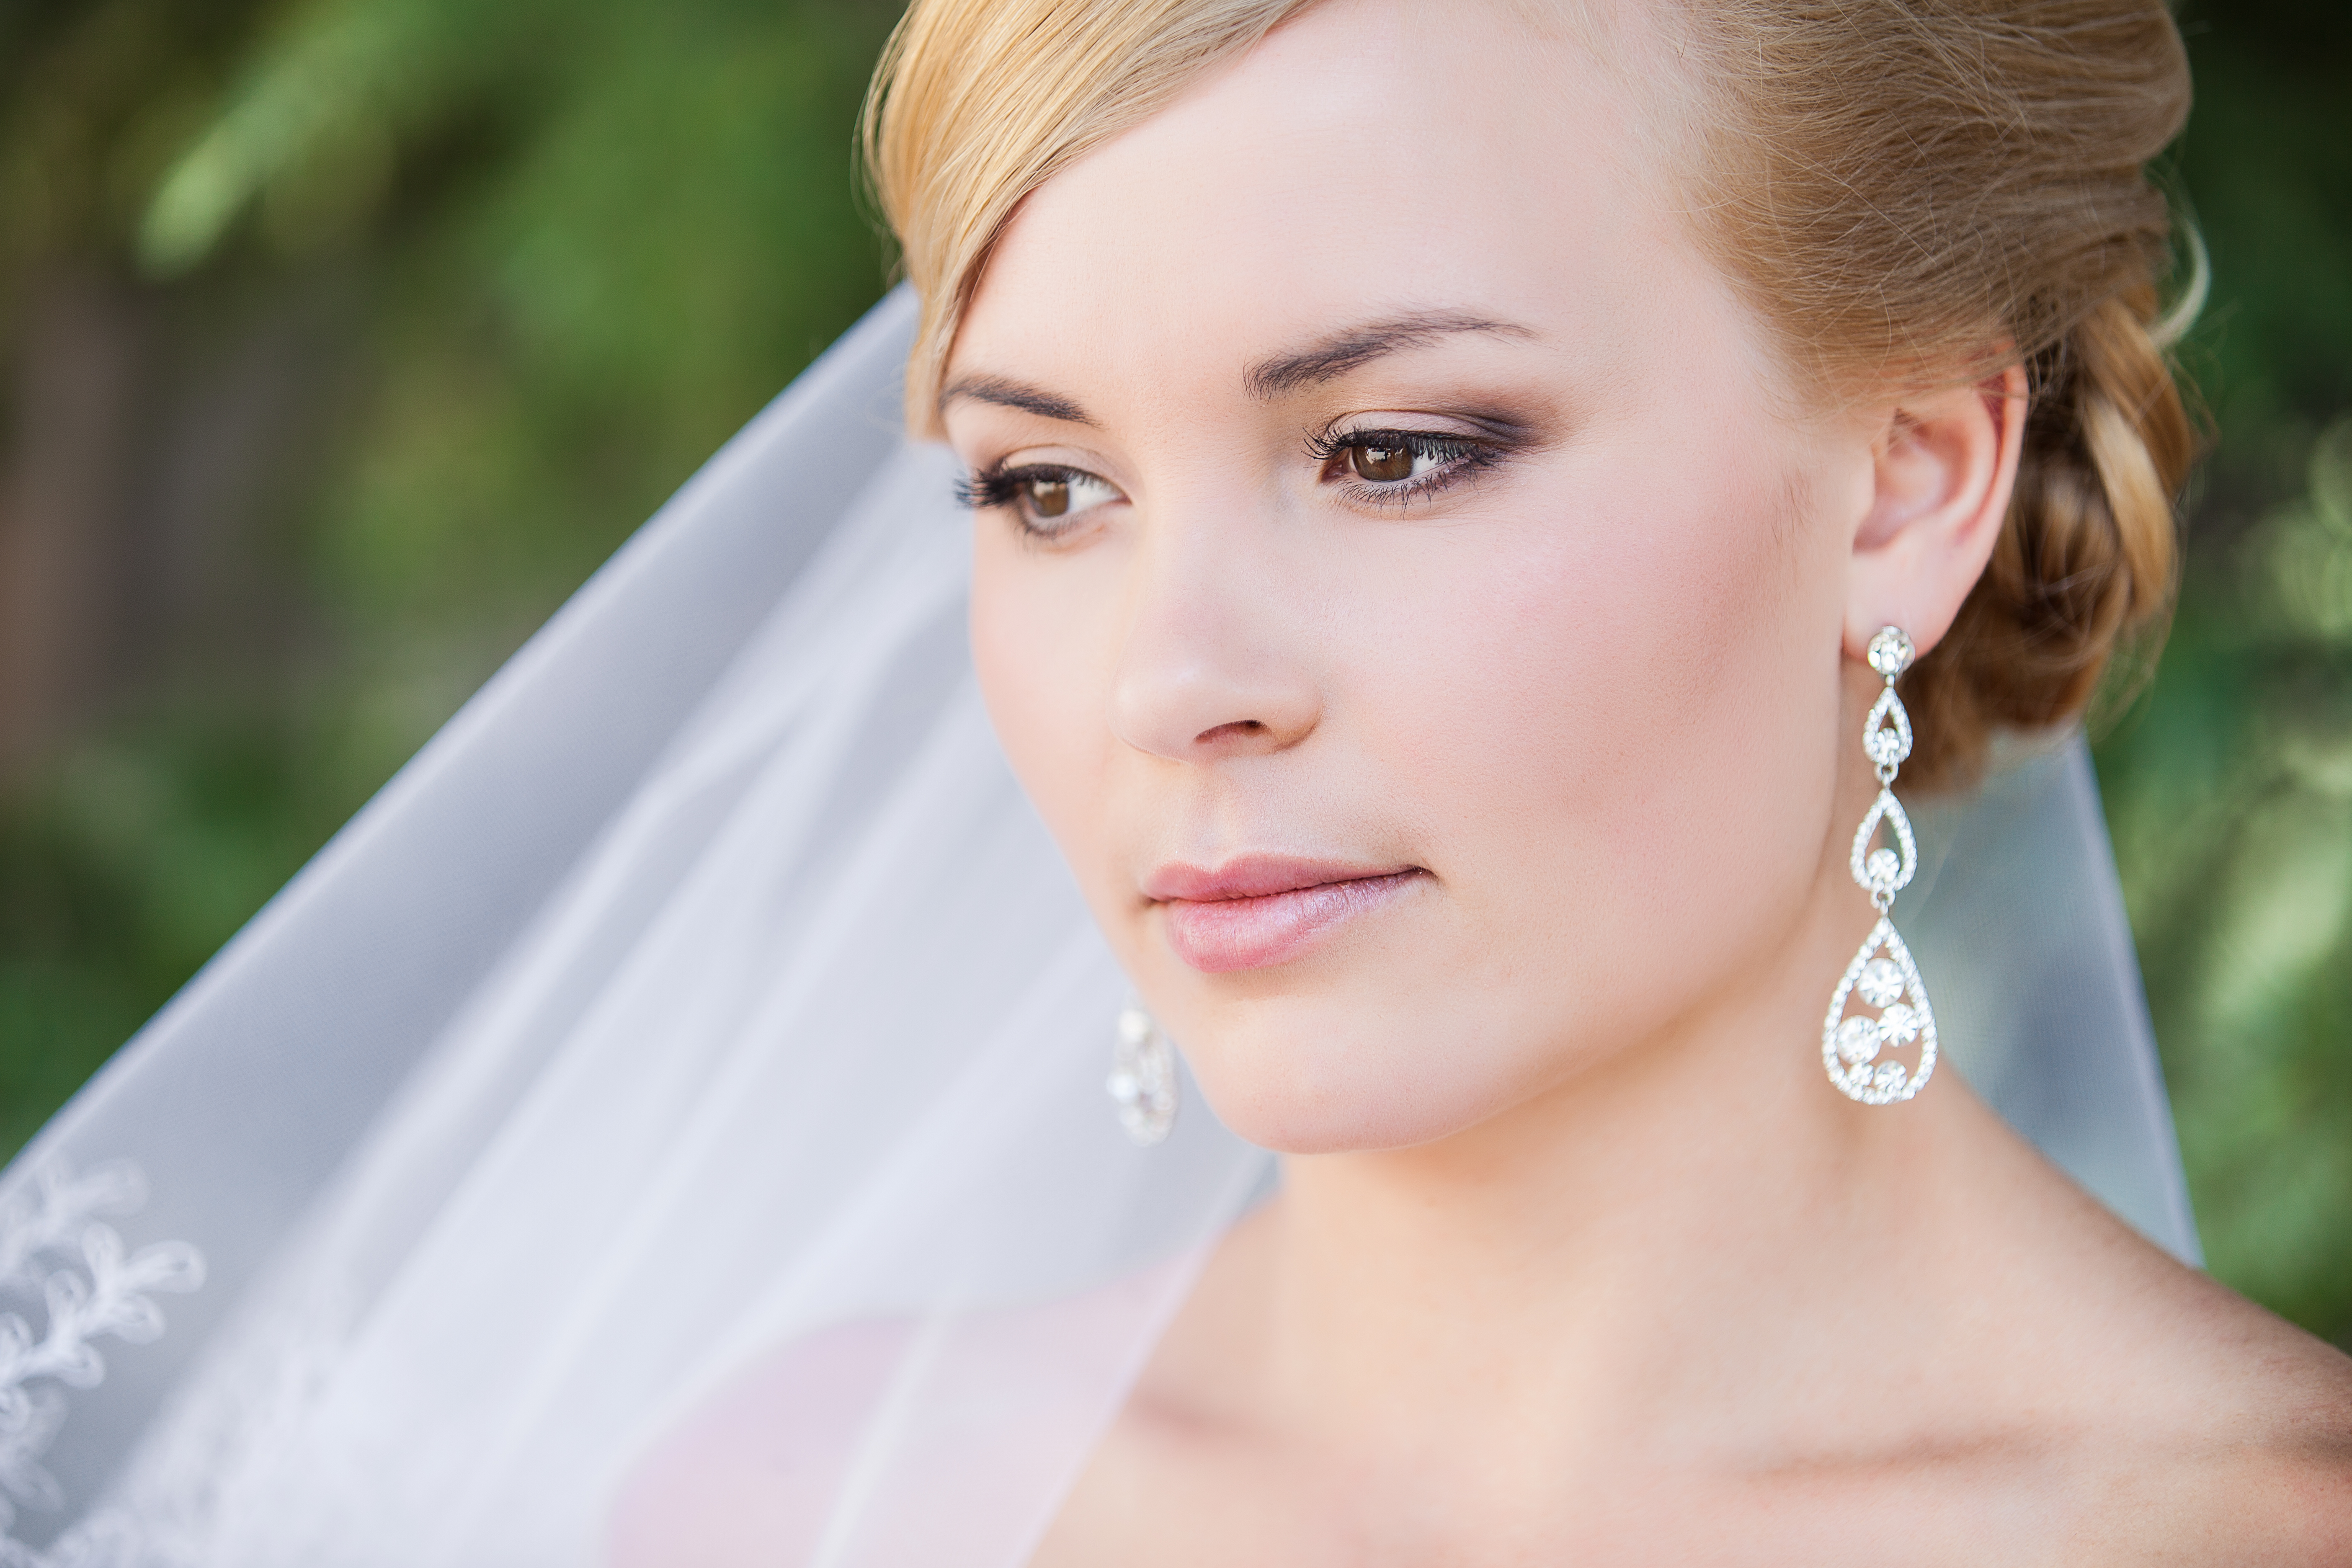 natural wedding make-up for brides: nine tips to master the look